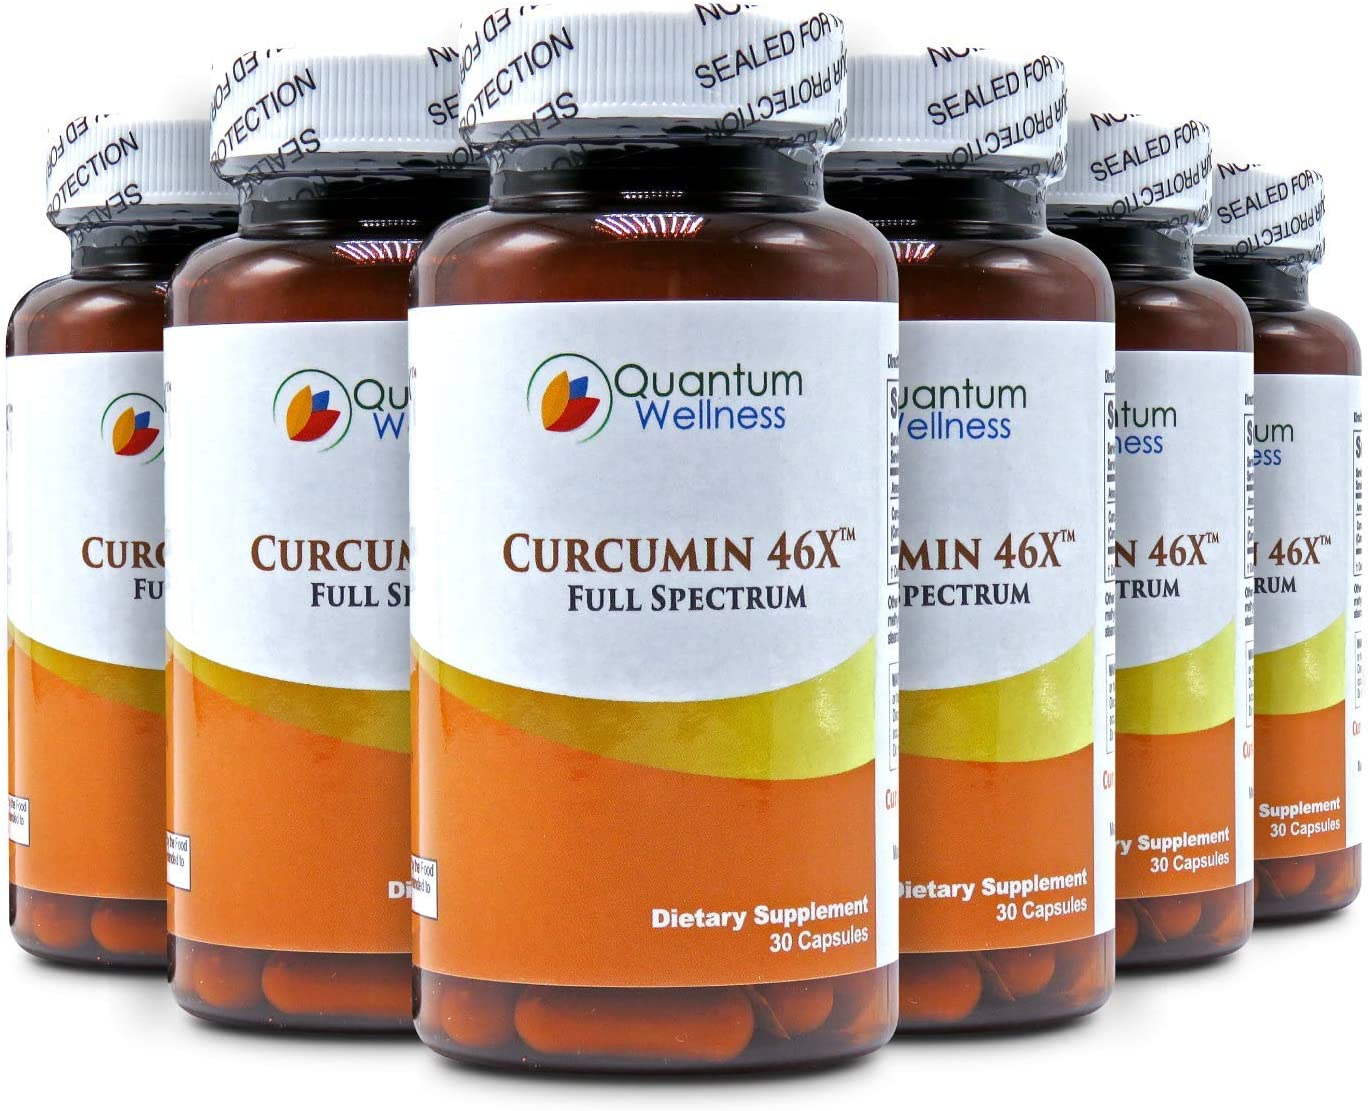 Curcumin 46x with Turmeric, Anti-Inflammatory, Anti-Oxidant with Curcuwin for 46X Higher Bioavailability for Better Absorption for Joint Pain Relief. Made in The USA 6 Bottles – 180 Capsules